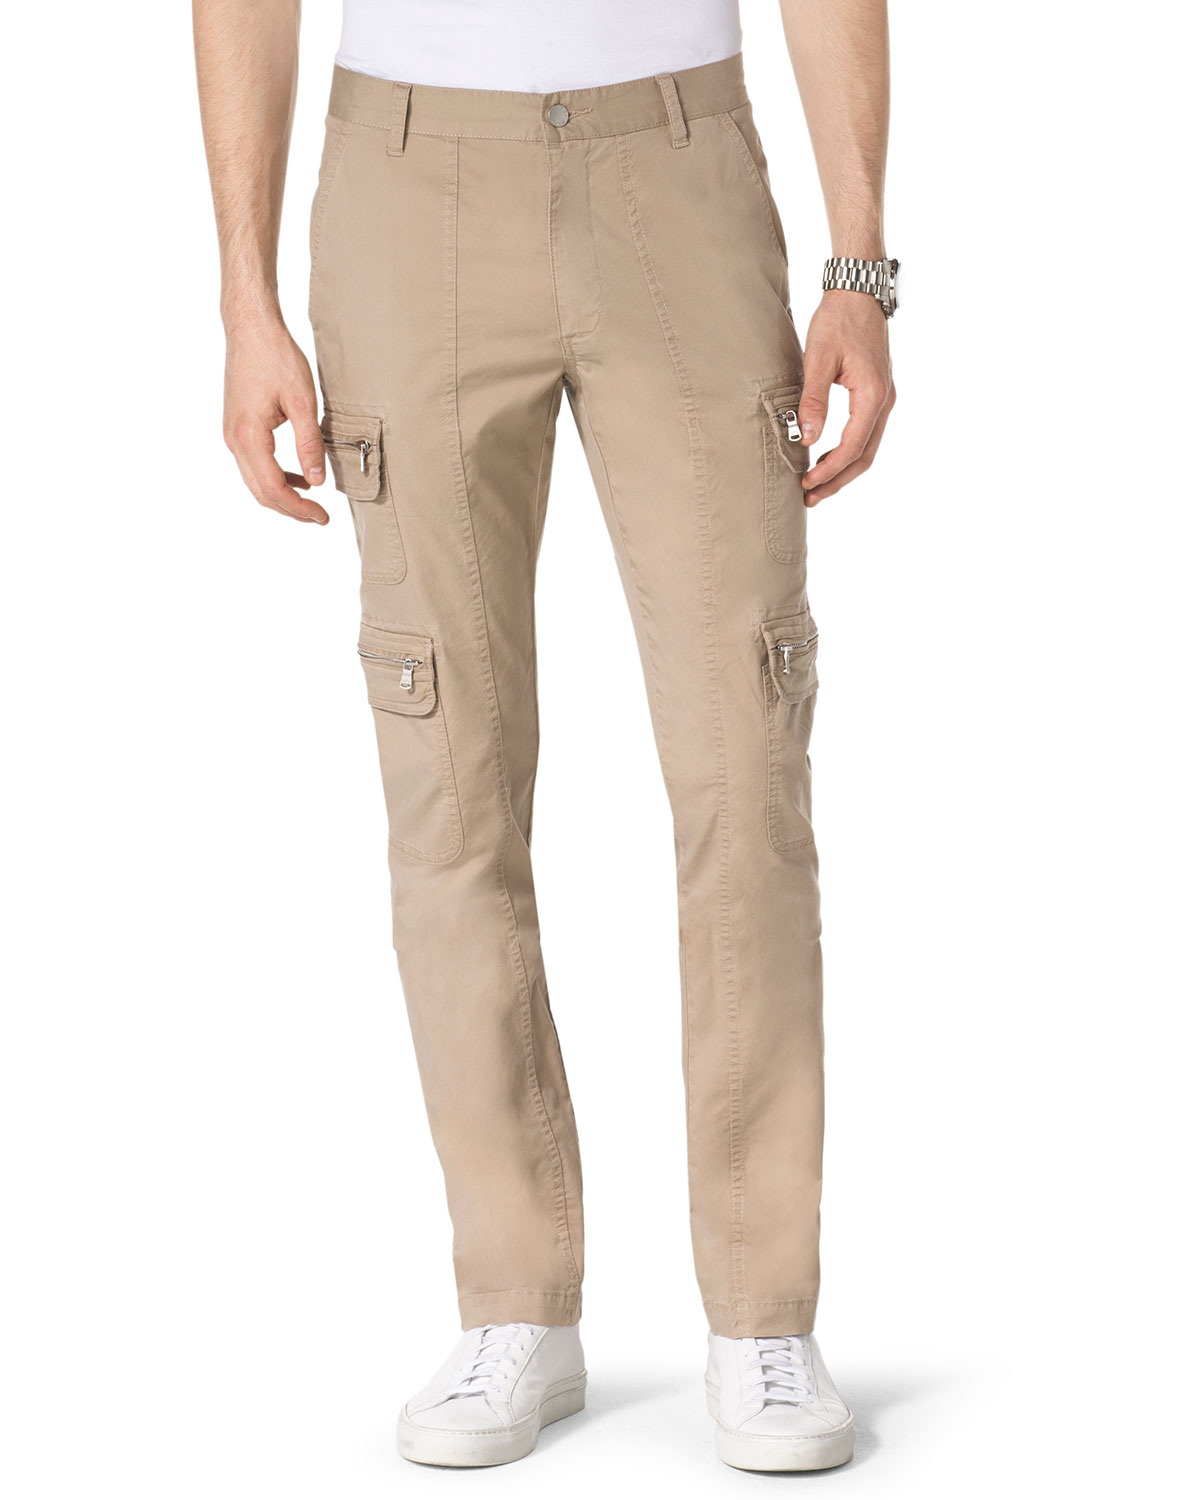 Khaki Cargo Pants Men Mens Khaki Cargo Pants Michael